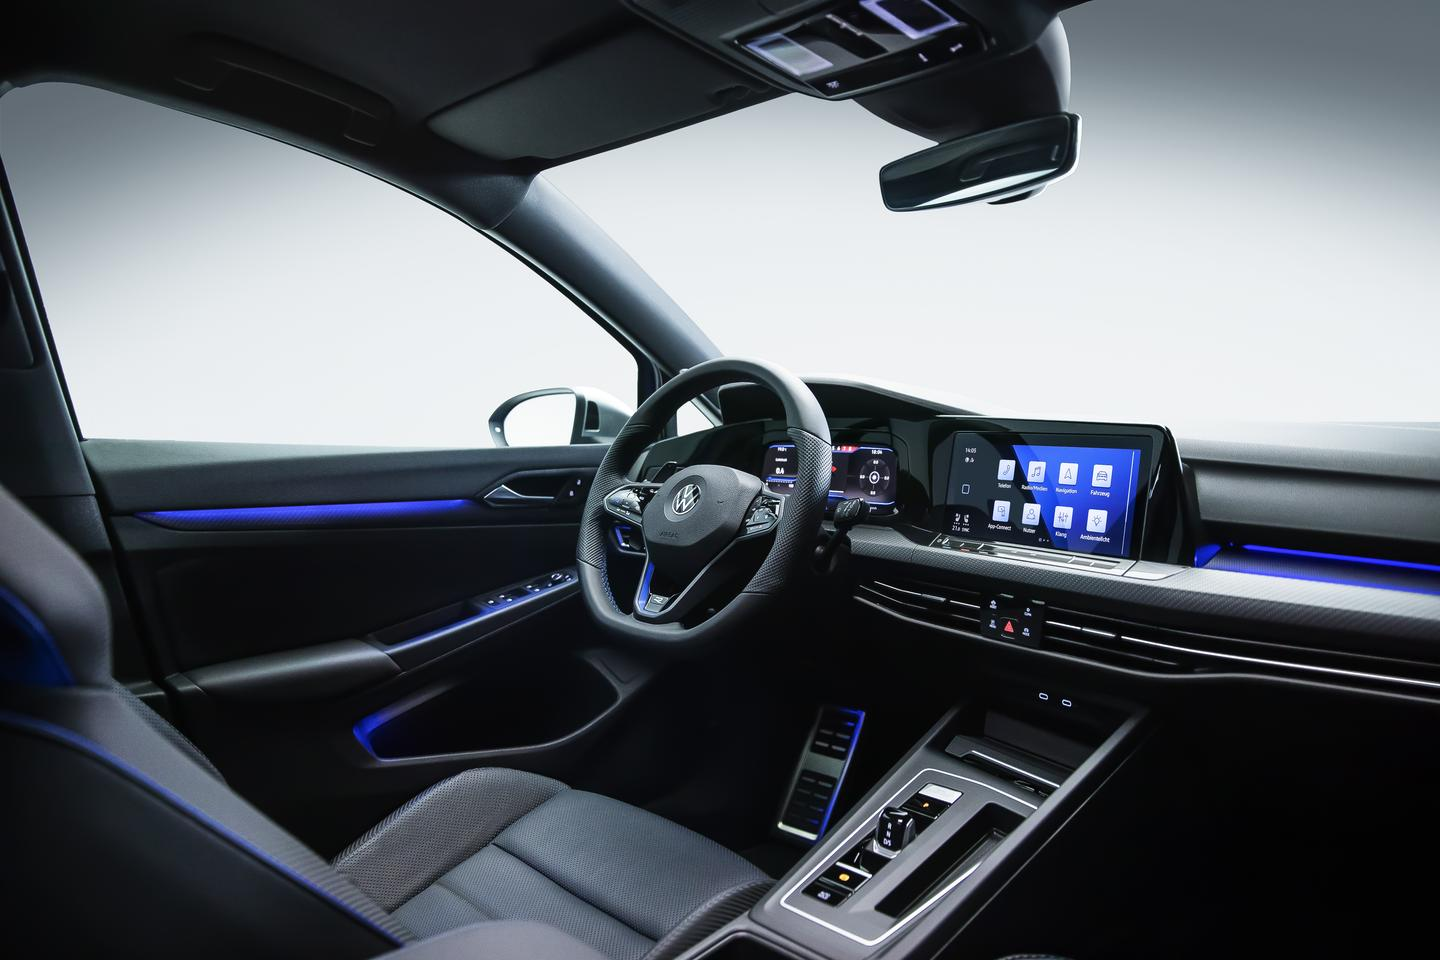 Inside the cabin of the Golf R 2022, is a 10-inch touchscreen display and digital instrument cluster